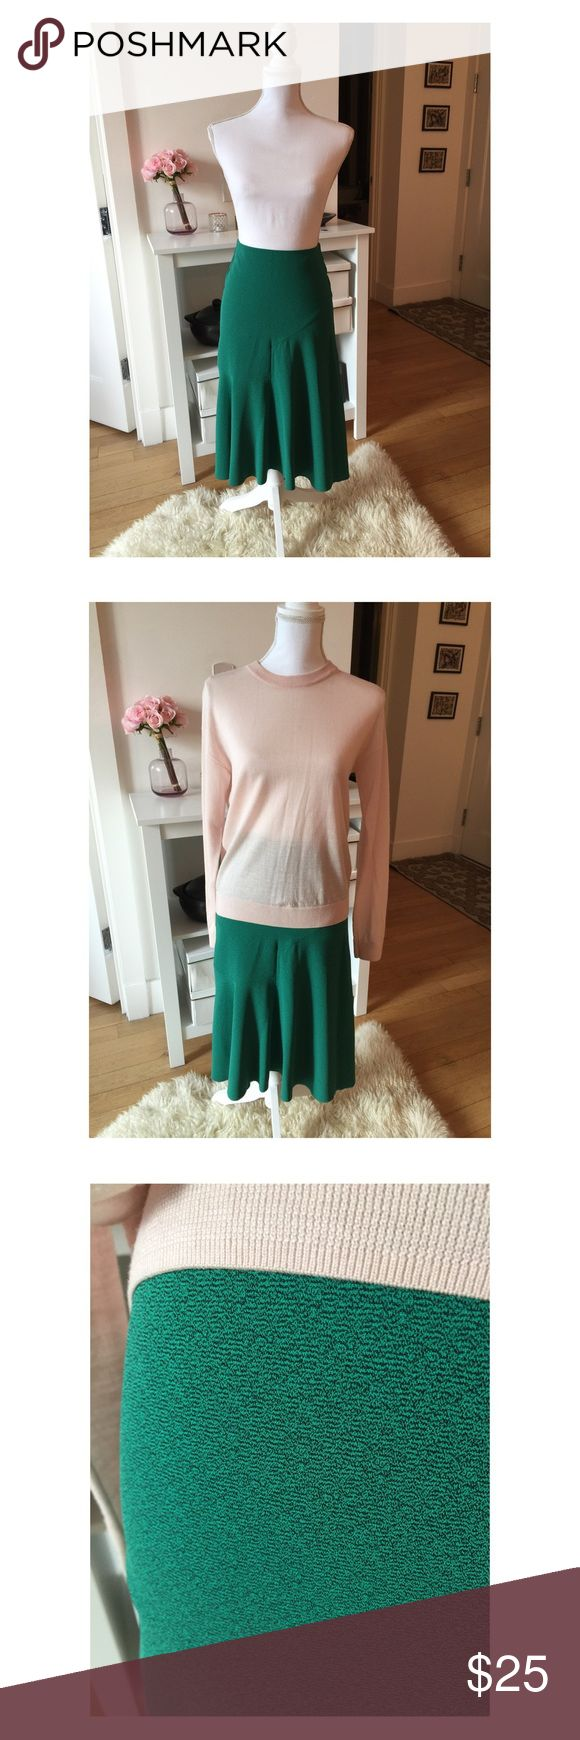 & Other Stories skirt & Other Stories A-line midi skirt in green color. Brand new, never worn, with tags. Fitted at the waist. & Other Stories is an upscale and trendy sister company of H&M. Sorry everything is a bit wrinkled on the photos, didn't have time to iron. & other stories Skirts Midi